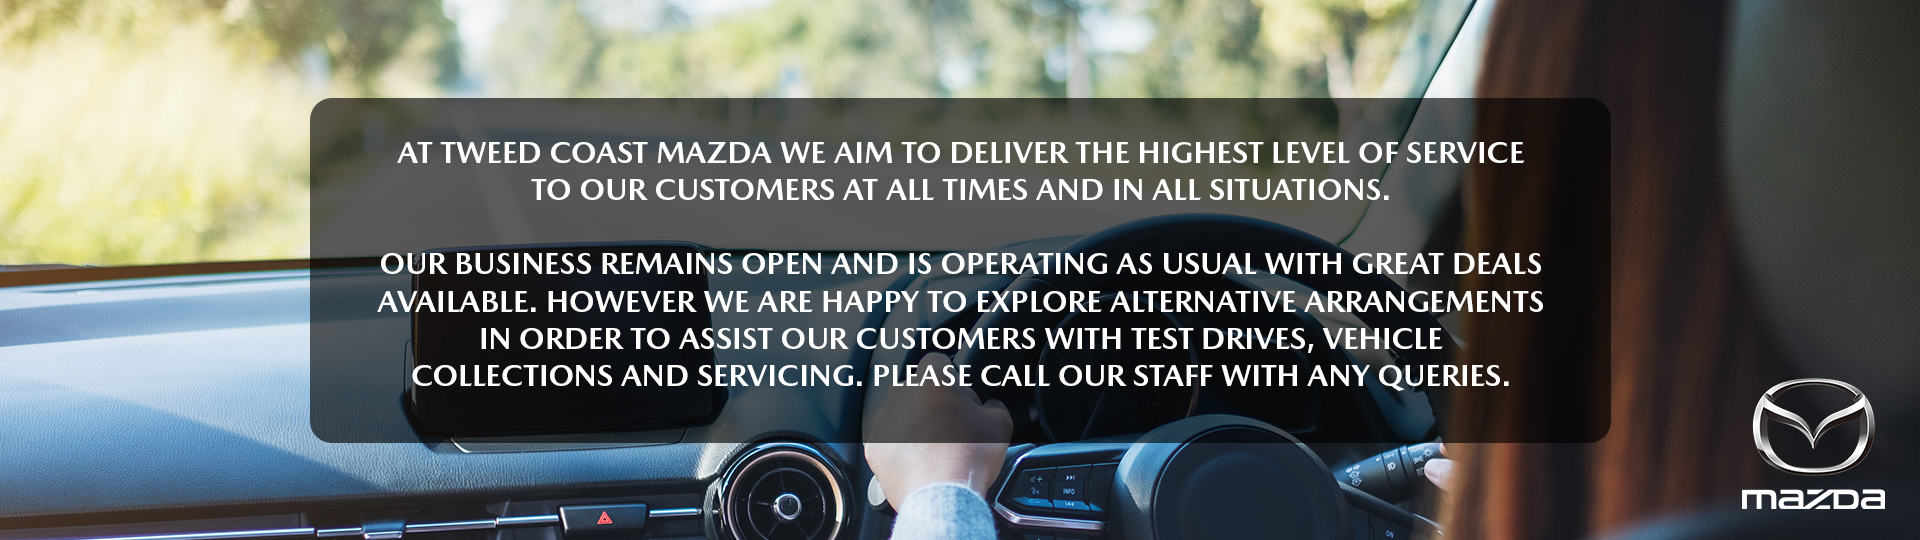 It's business as usual at Tweed Coast Mazda